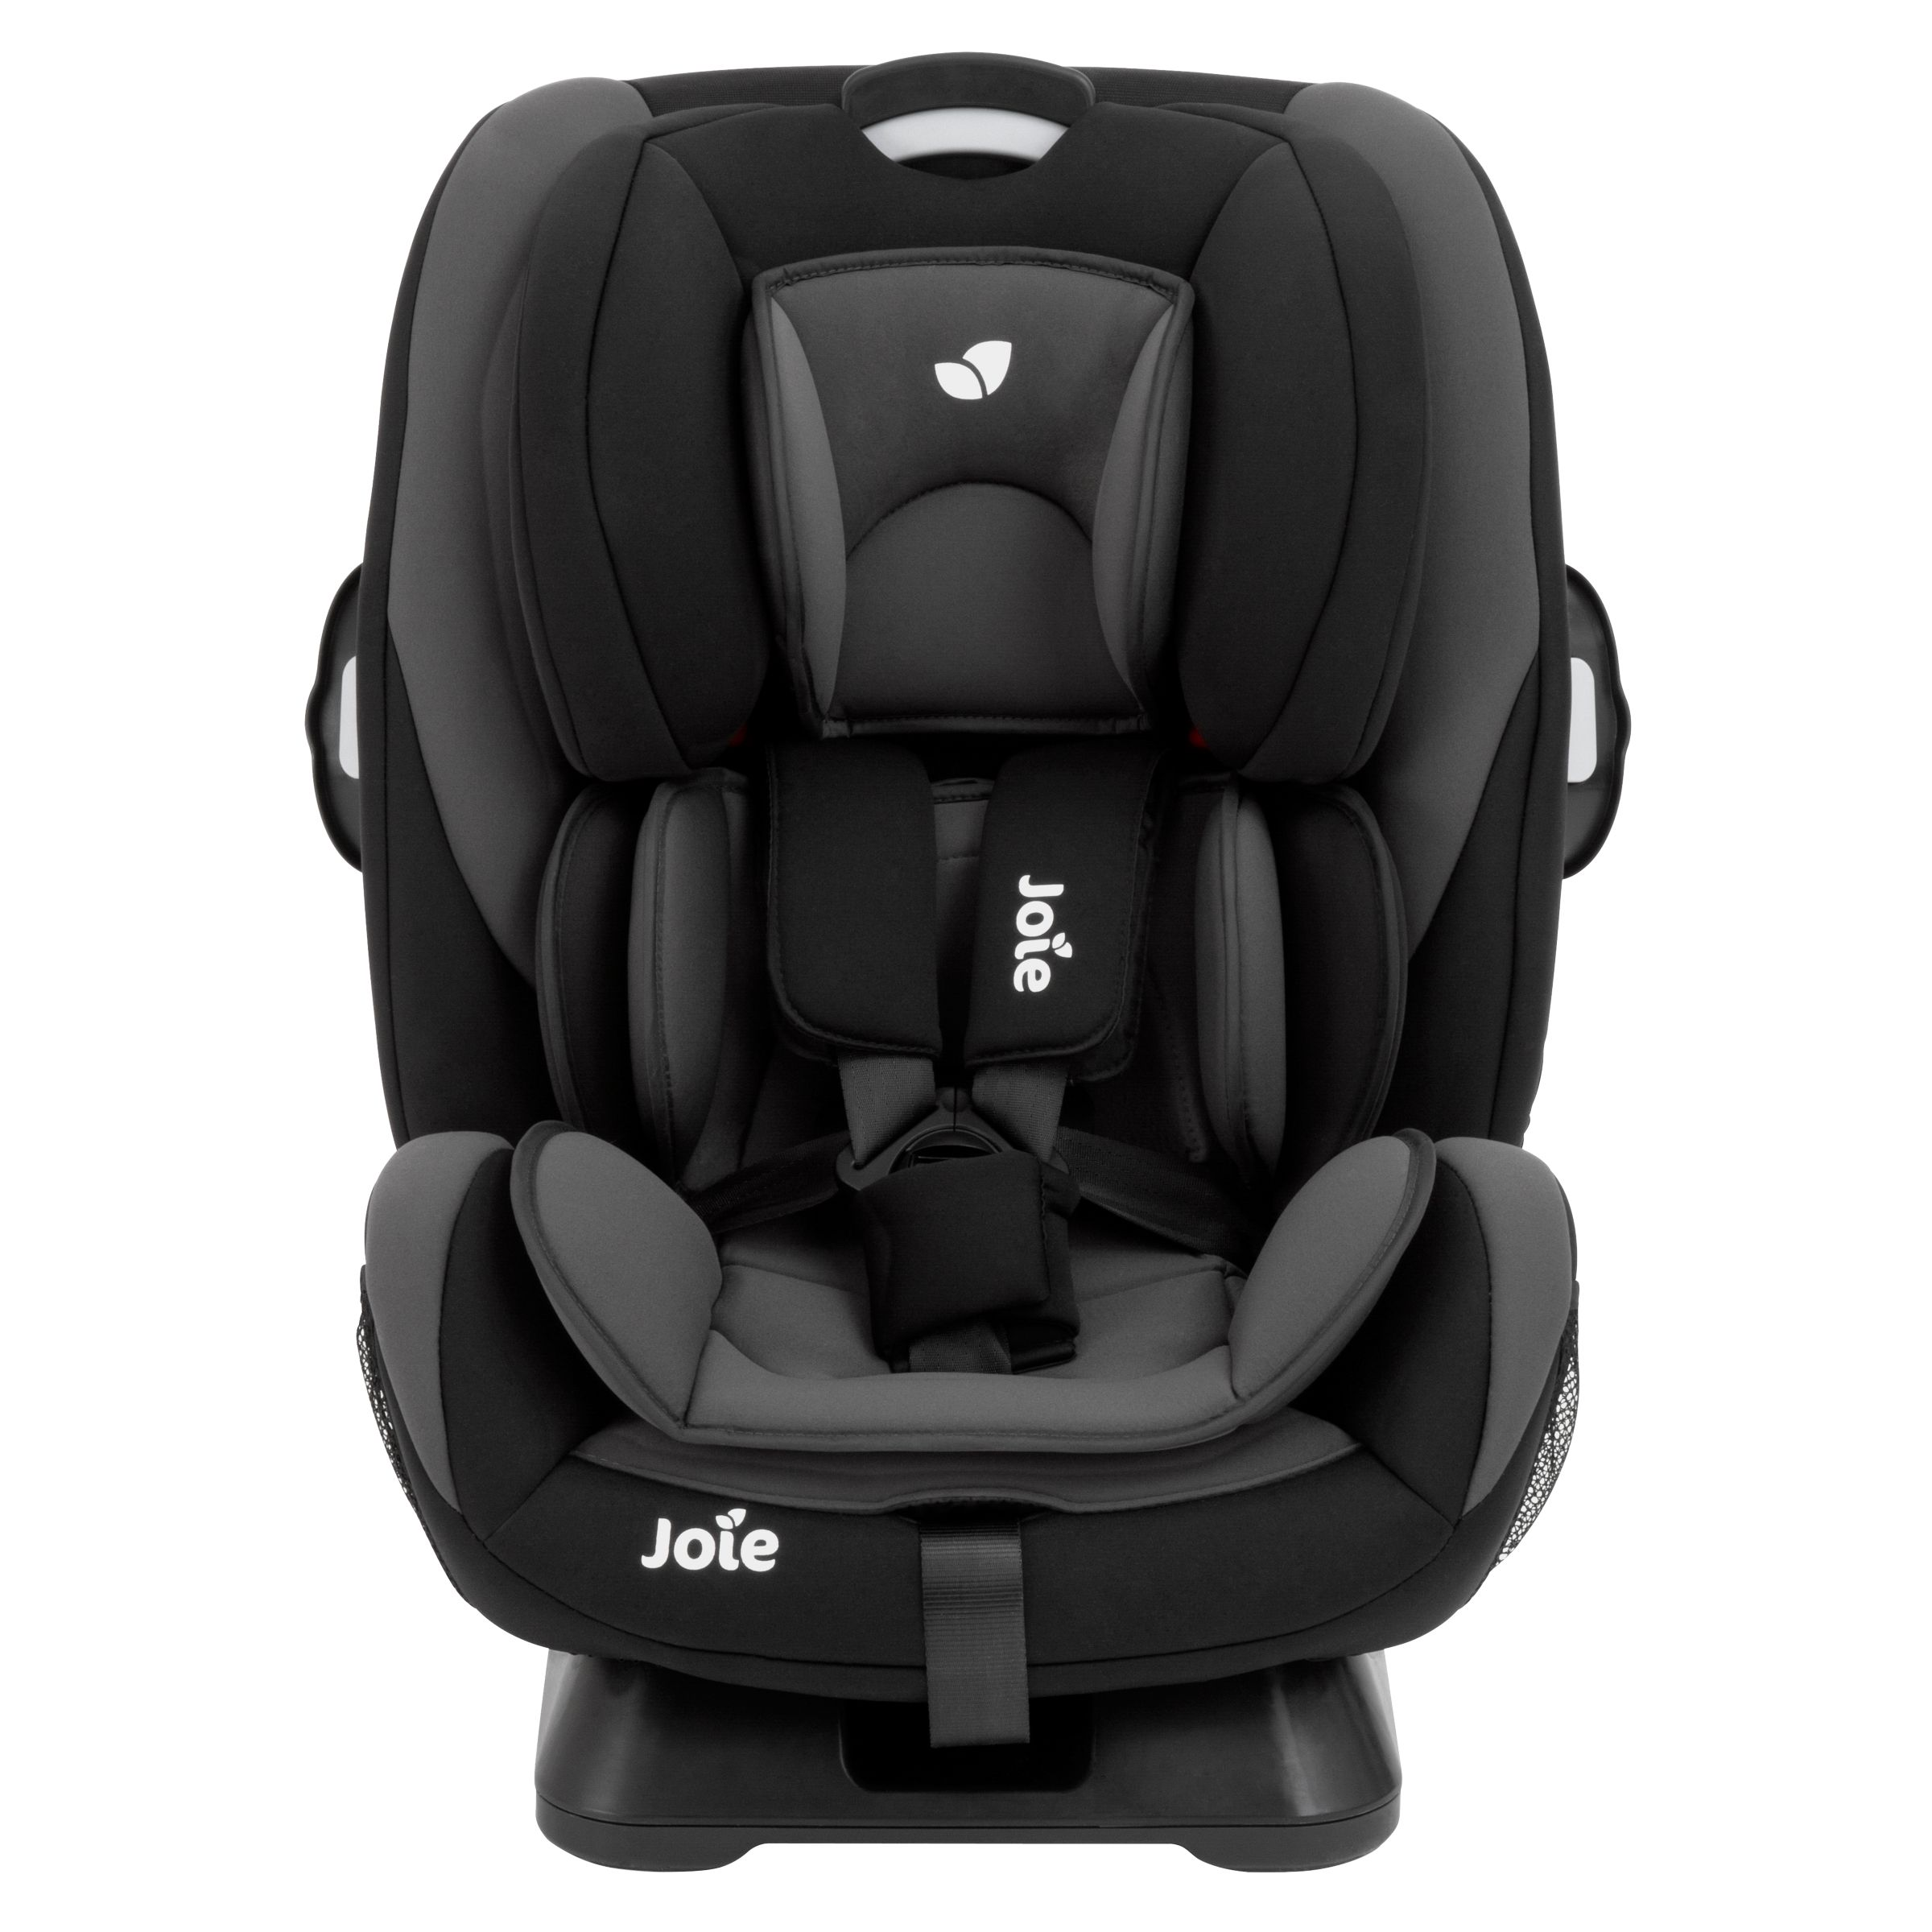 Joie Baby Joie Every Stage Group 0+/1/2/3 Car Seat, Black